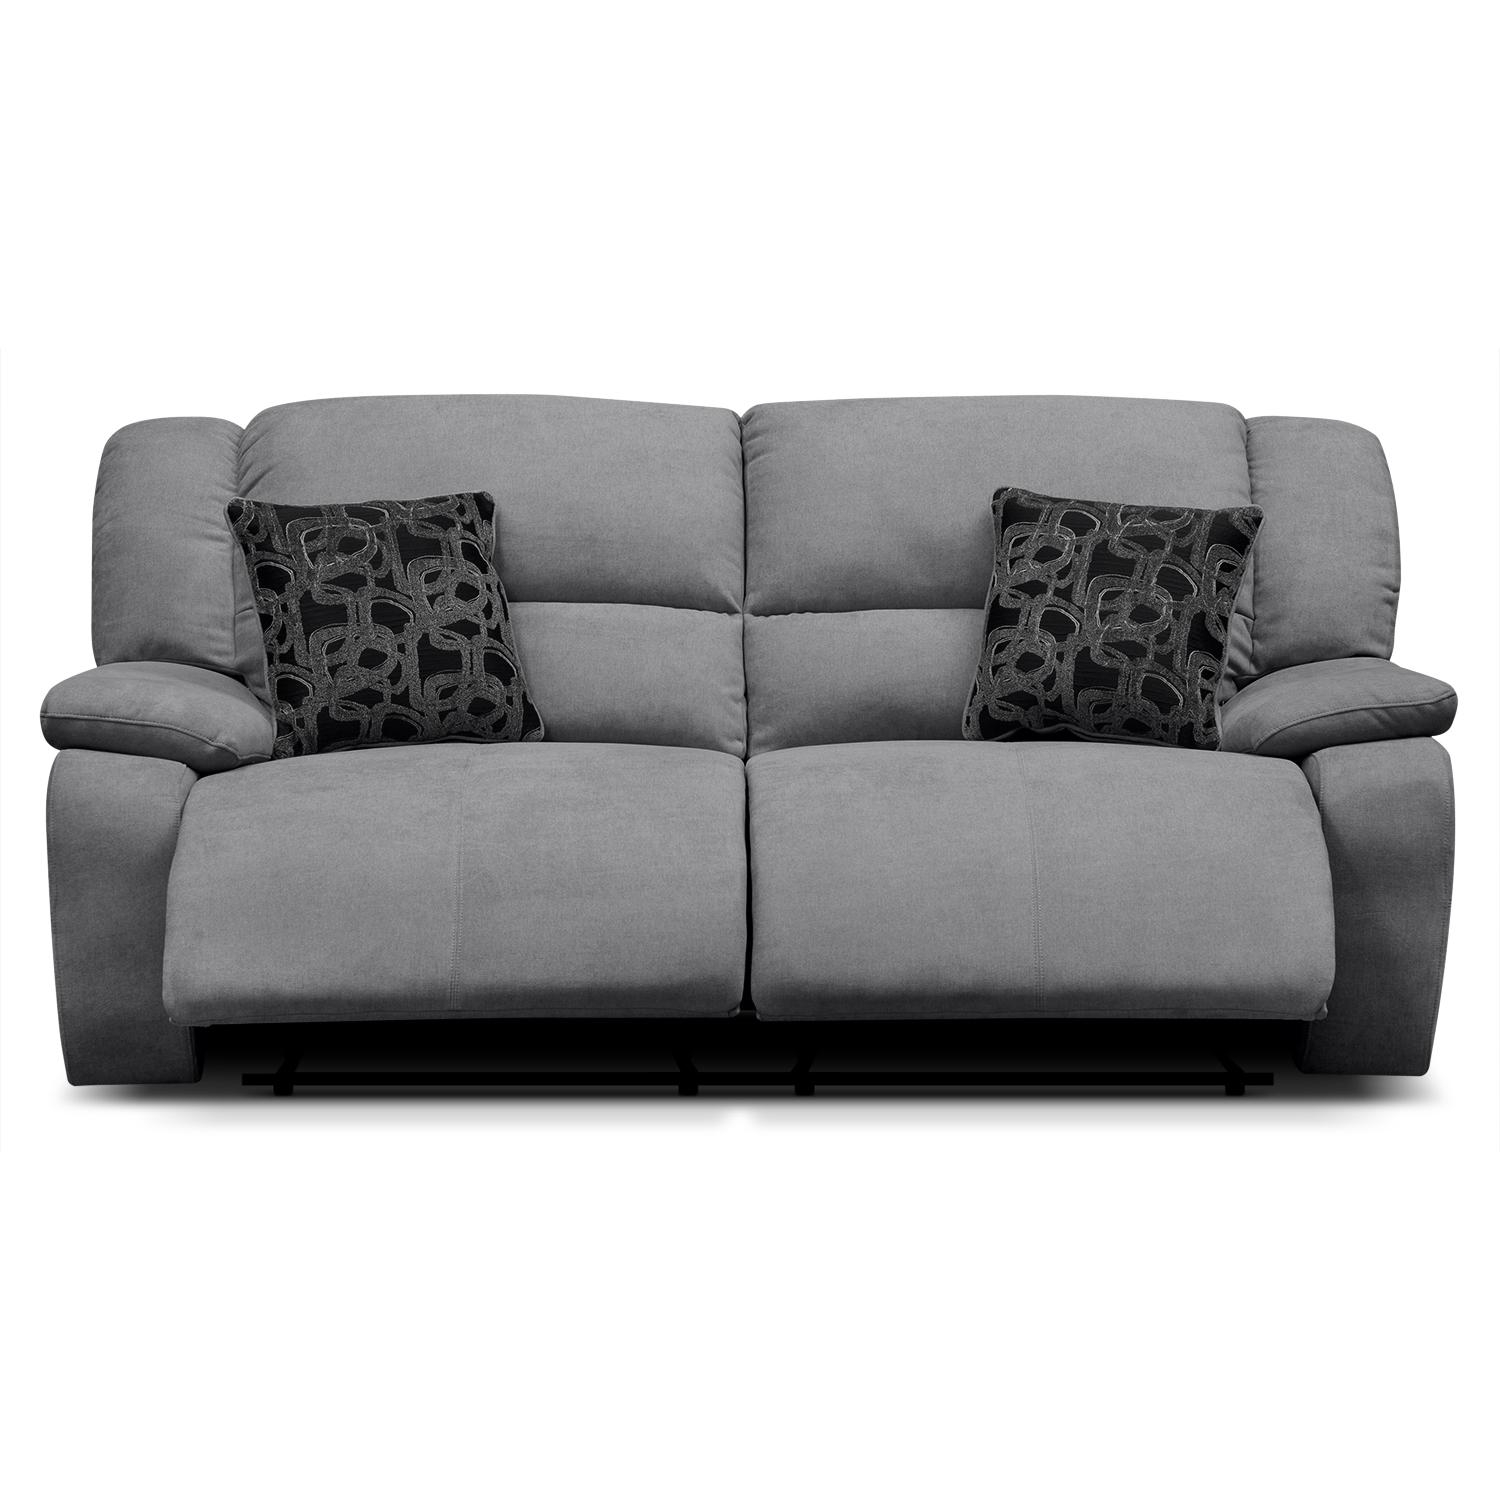 Sofas Center : Ashbourne Two Seater Recliner Sofa Hsl Sofa Ascot Throughout 2 Seat Recliner Sofas (Image 11 of 20)